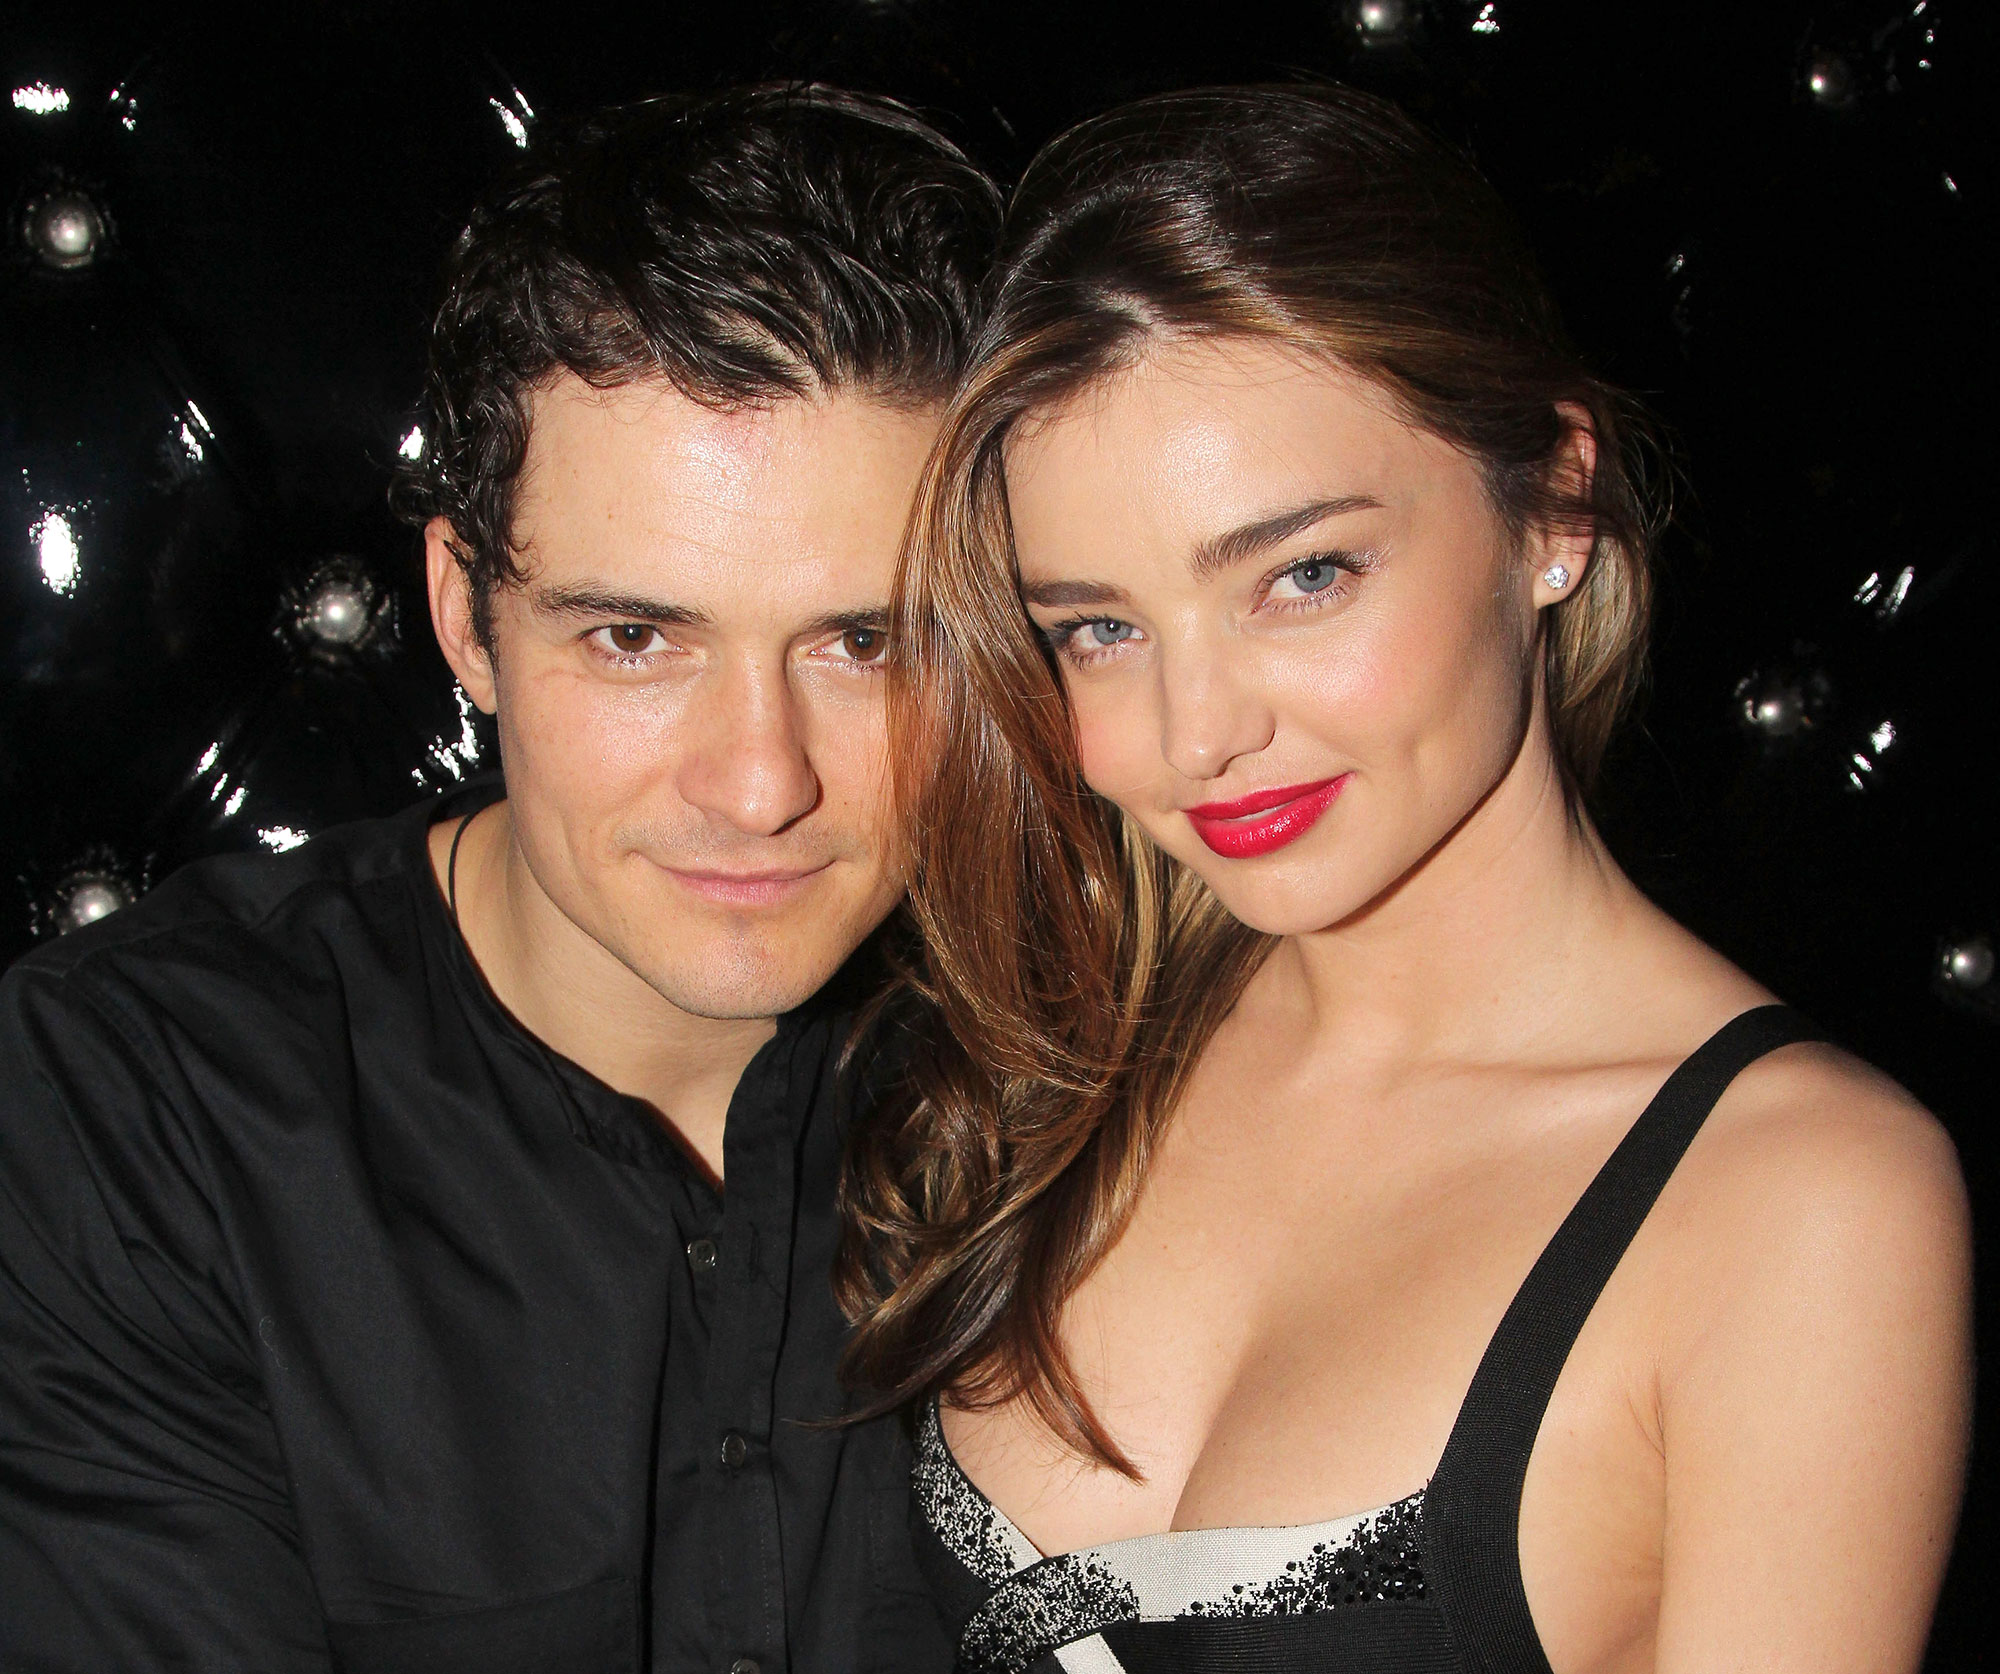 Celebrity Couples Who Got Engaged and Married in the Same Year - Engaged: June 2010 Married: July 22, 2010 Status: Divorced in October 2013 and share son Flynn; Bloom is now engaged to Katy Perry , and Kerr is married to Evan Spiegel , with whom she shares son Hart